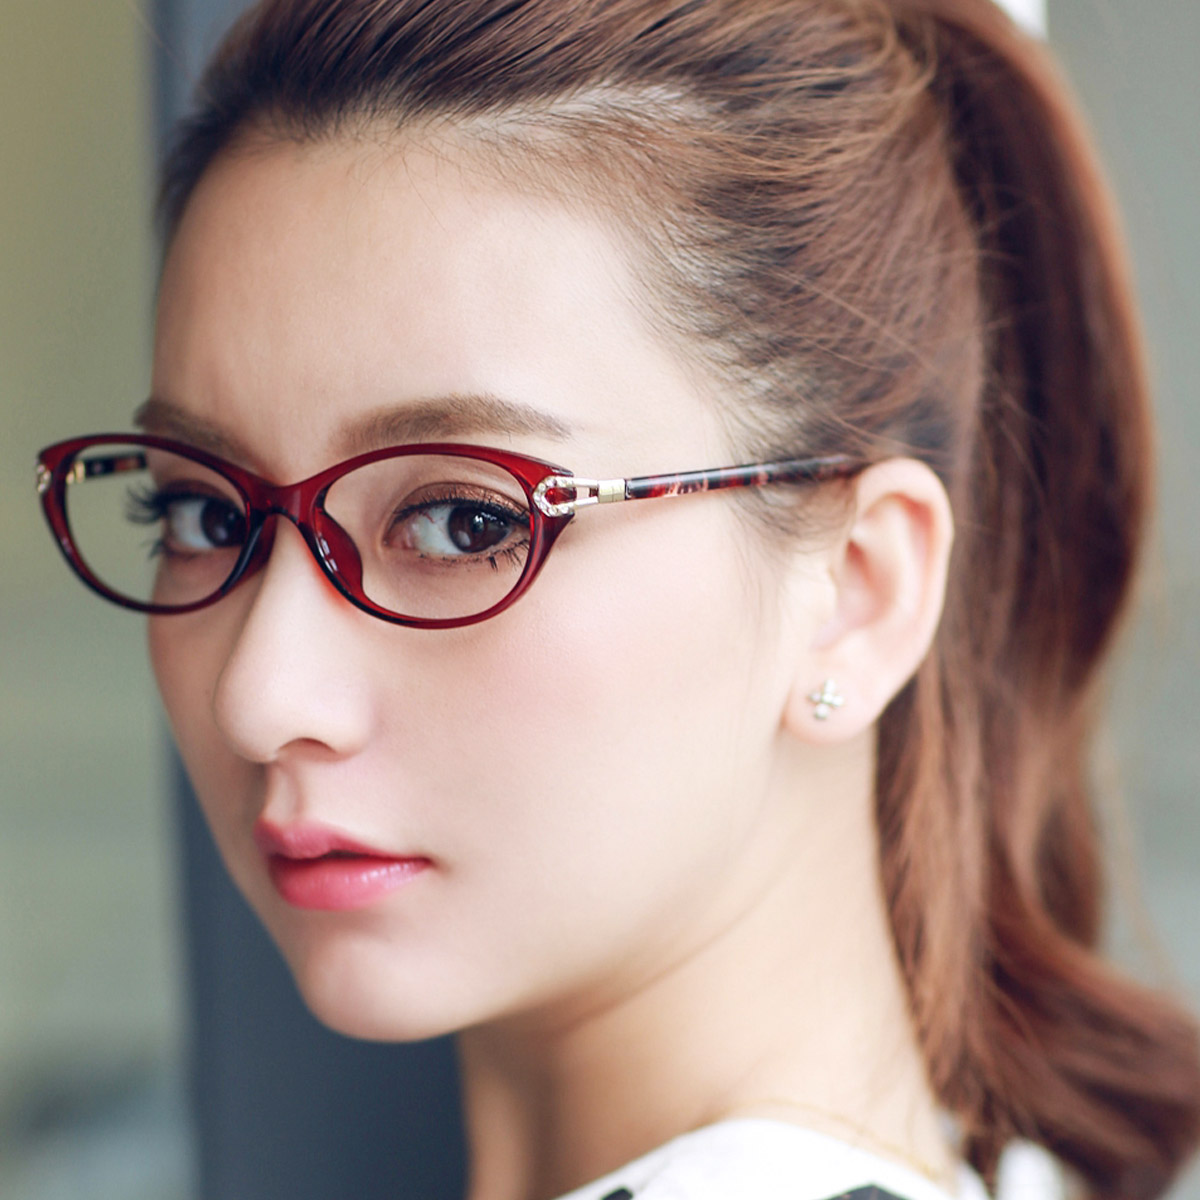 Glasses frame glasses frame female lightweight tr90 frame full frame myopia glasses female glasses female glasses frame female tide can be equipped with a round face chromotropic